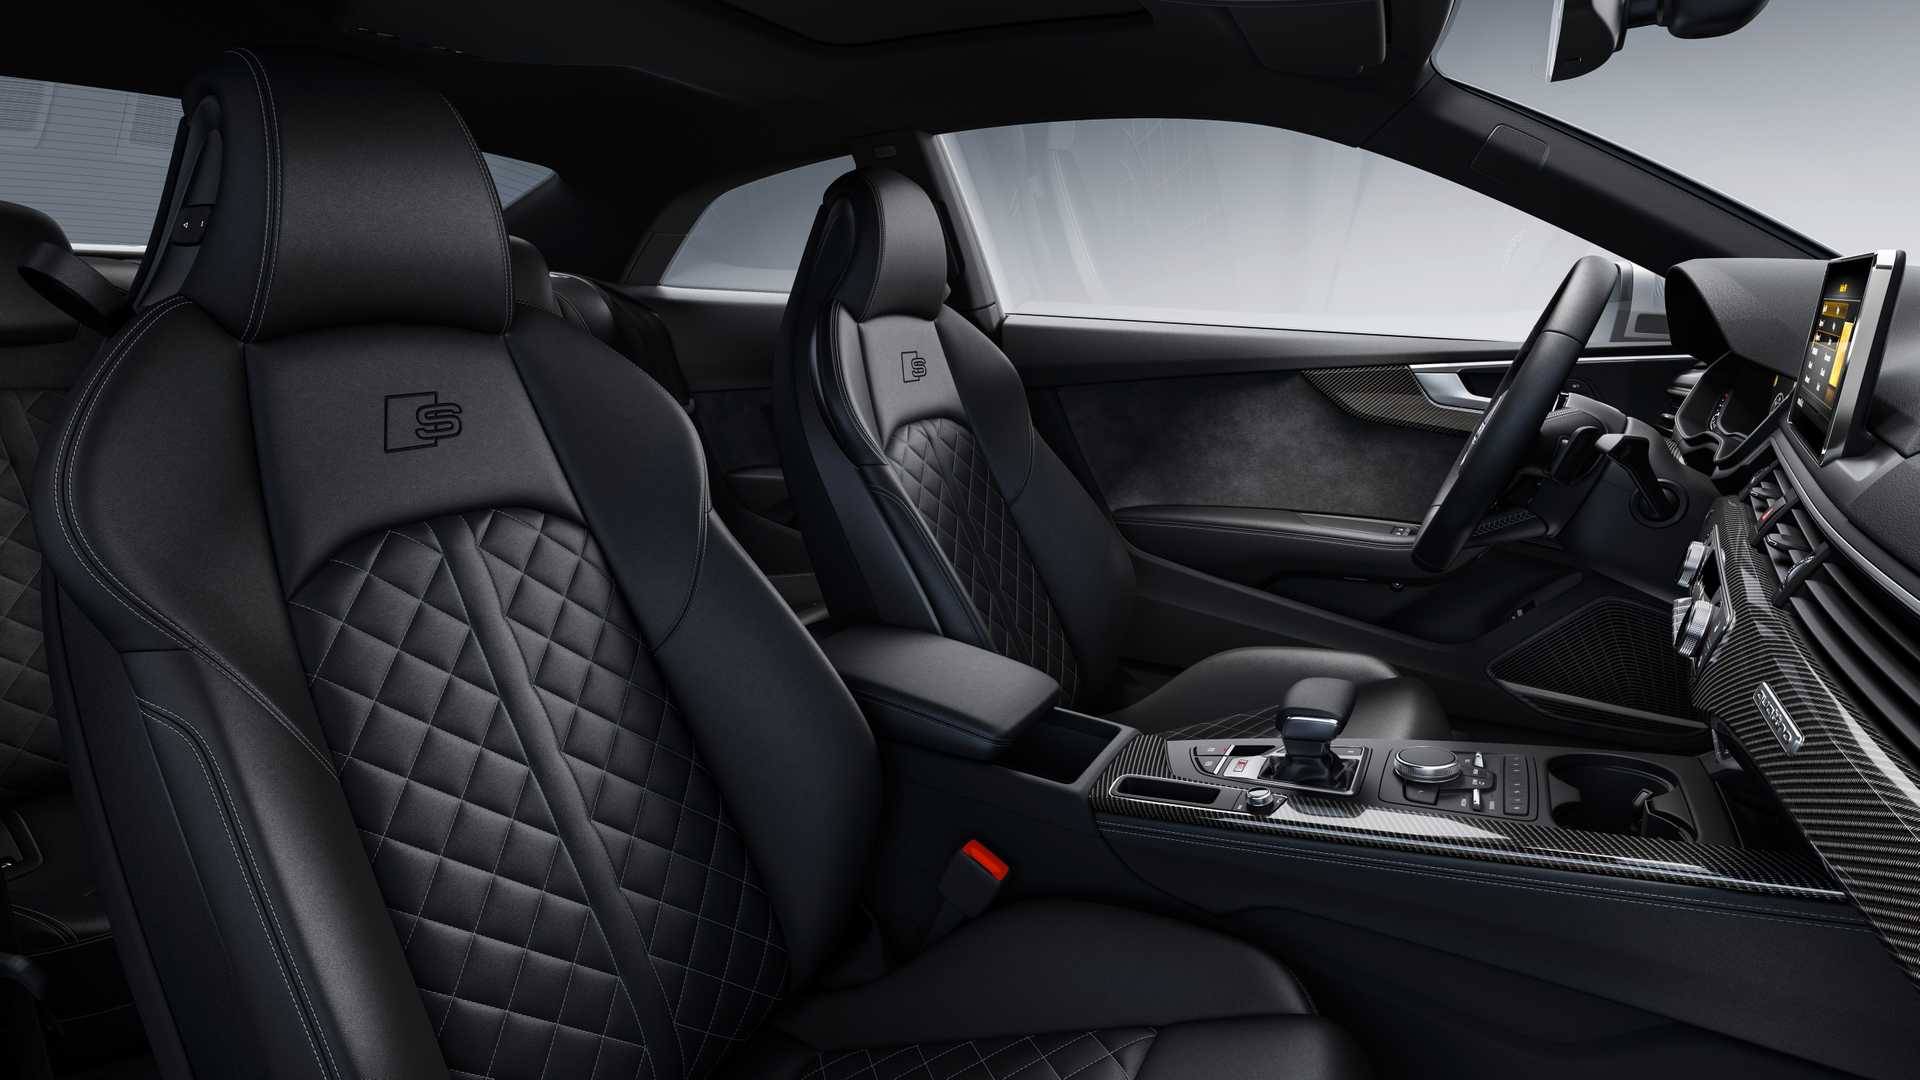 2019 Audi S5 Coupé TDI Interior Front Seats Wallpapers #15 of 17